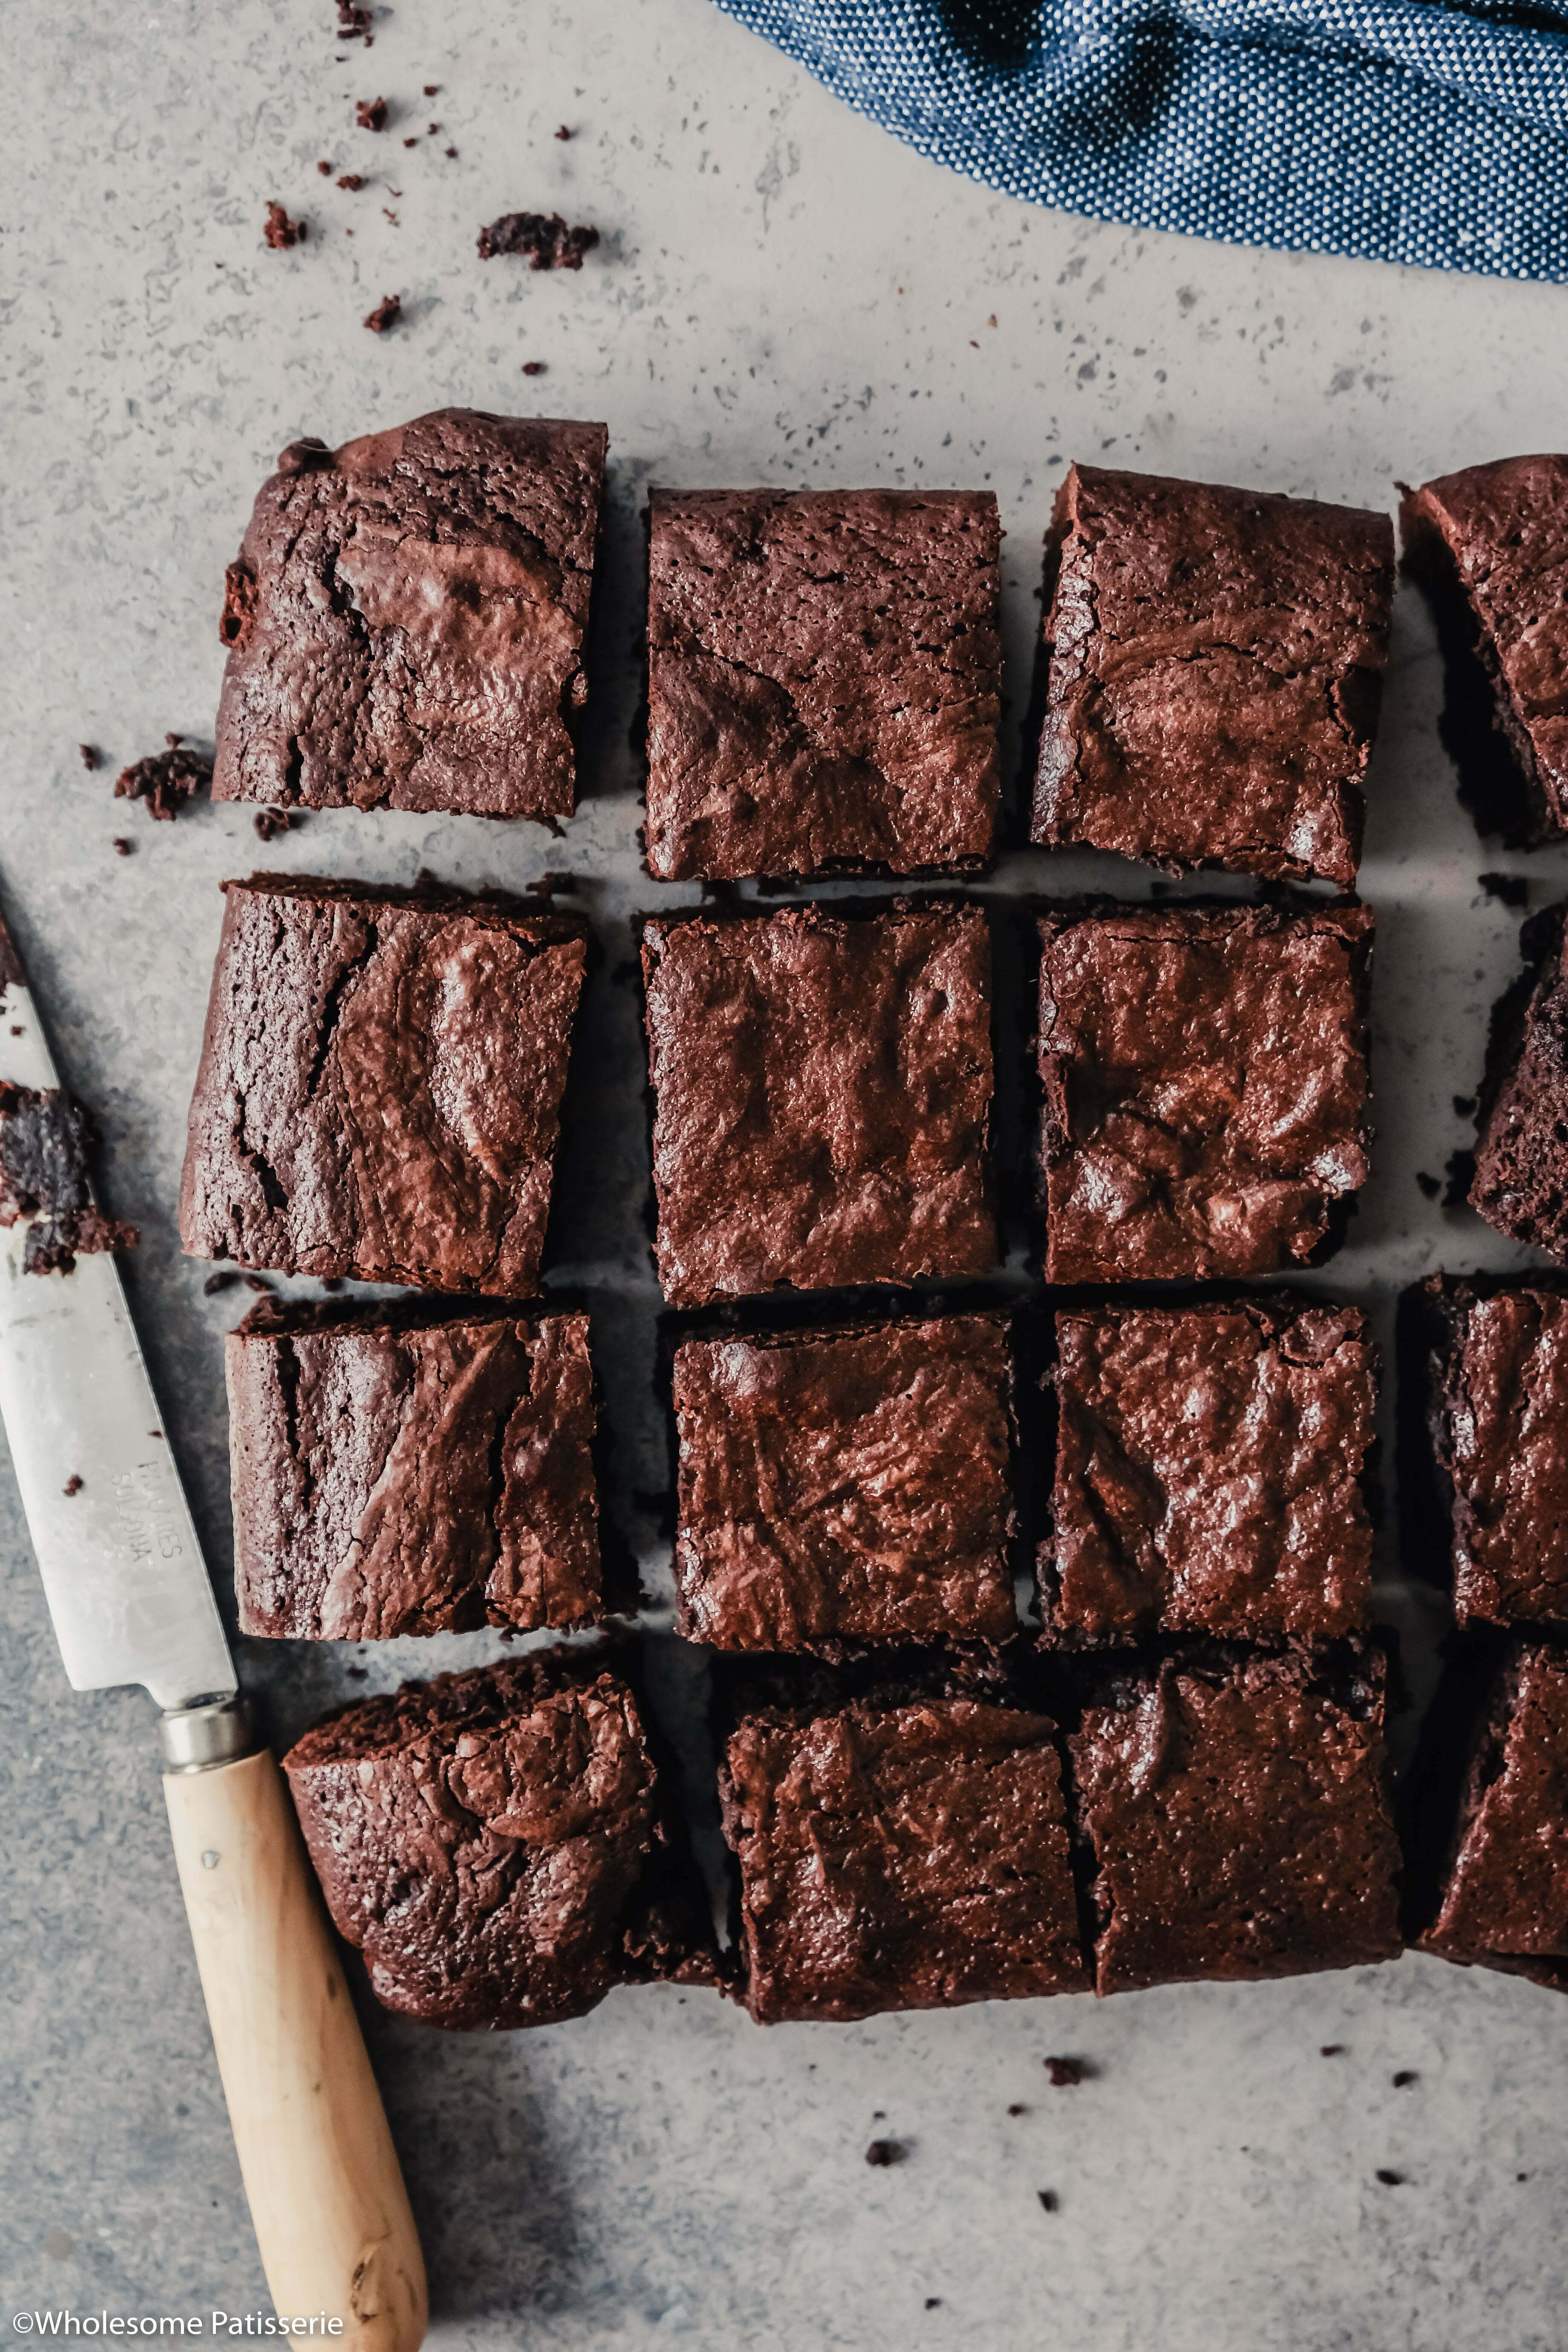 Gluten Free Classic Chocolate Brownies! These homemade brownies are rich, thick and free from gluten. A touch of coffee enhances the flavour of the cocoa making these brownies incredibly delectable!